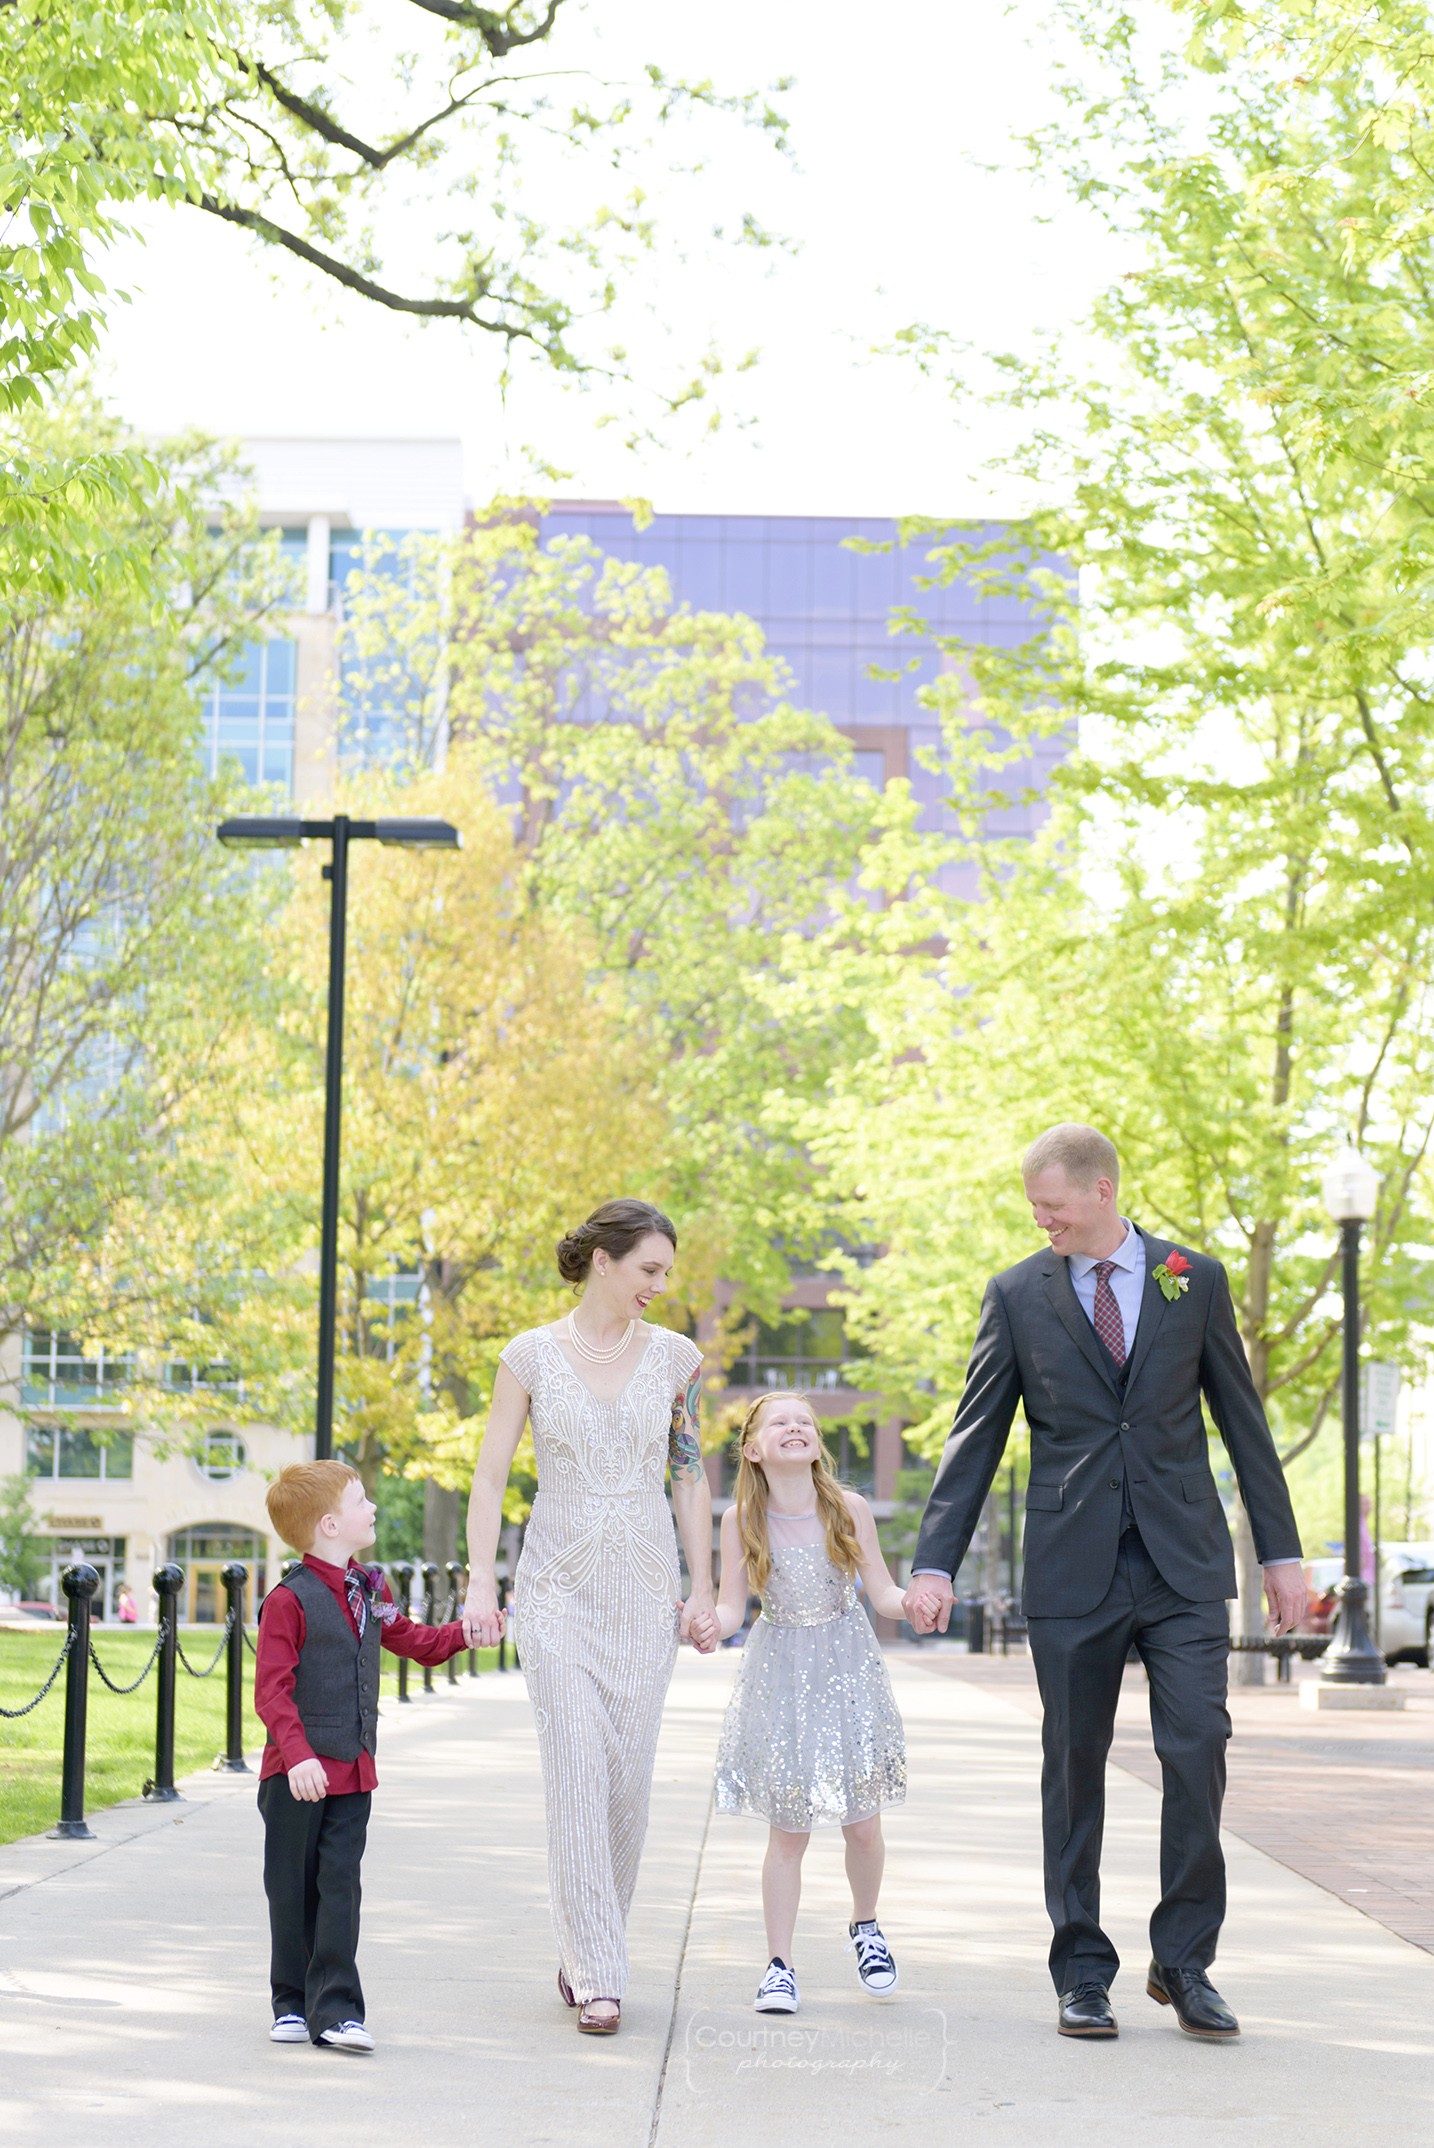 madison-vow-renewal-capitol-family-walking-photography-by-courtney-laper©COPYRIGHTCMP-0267.jpg